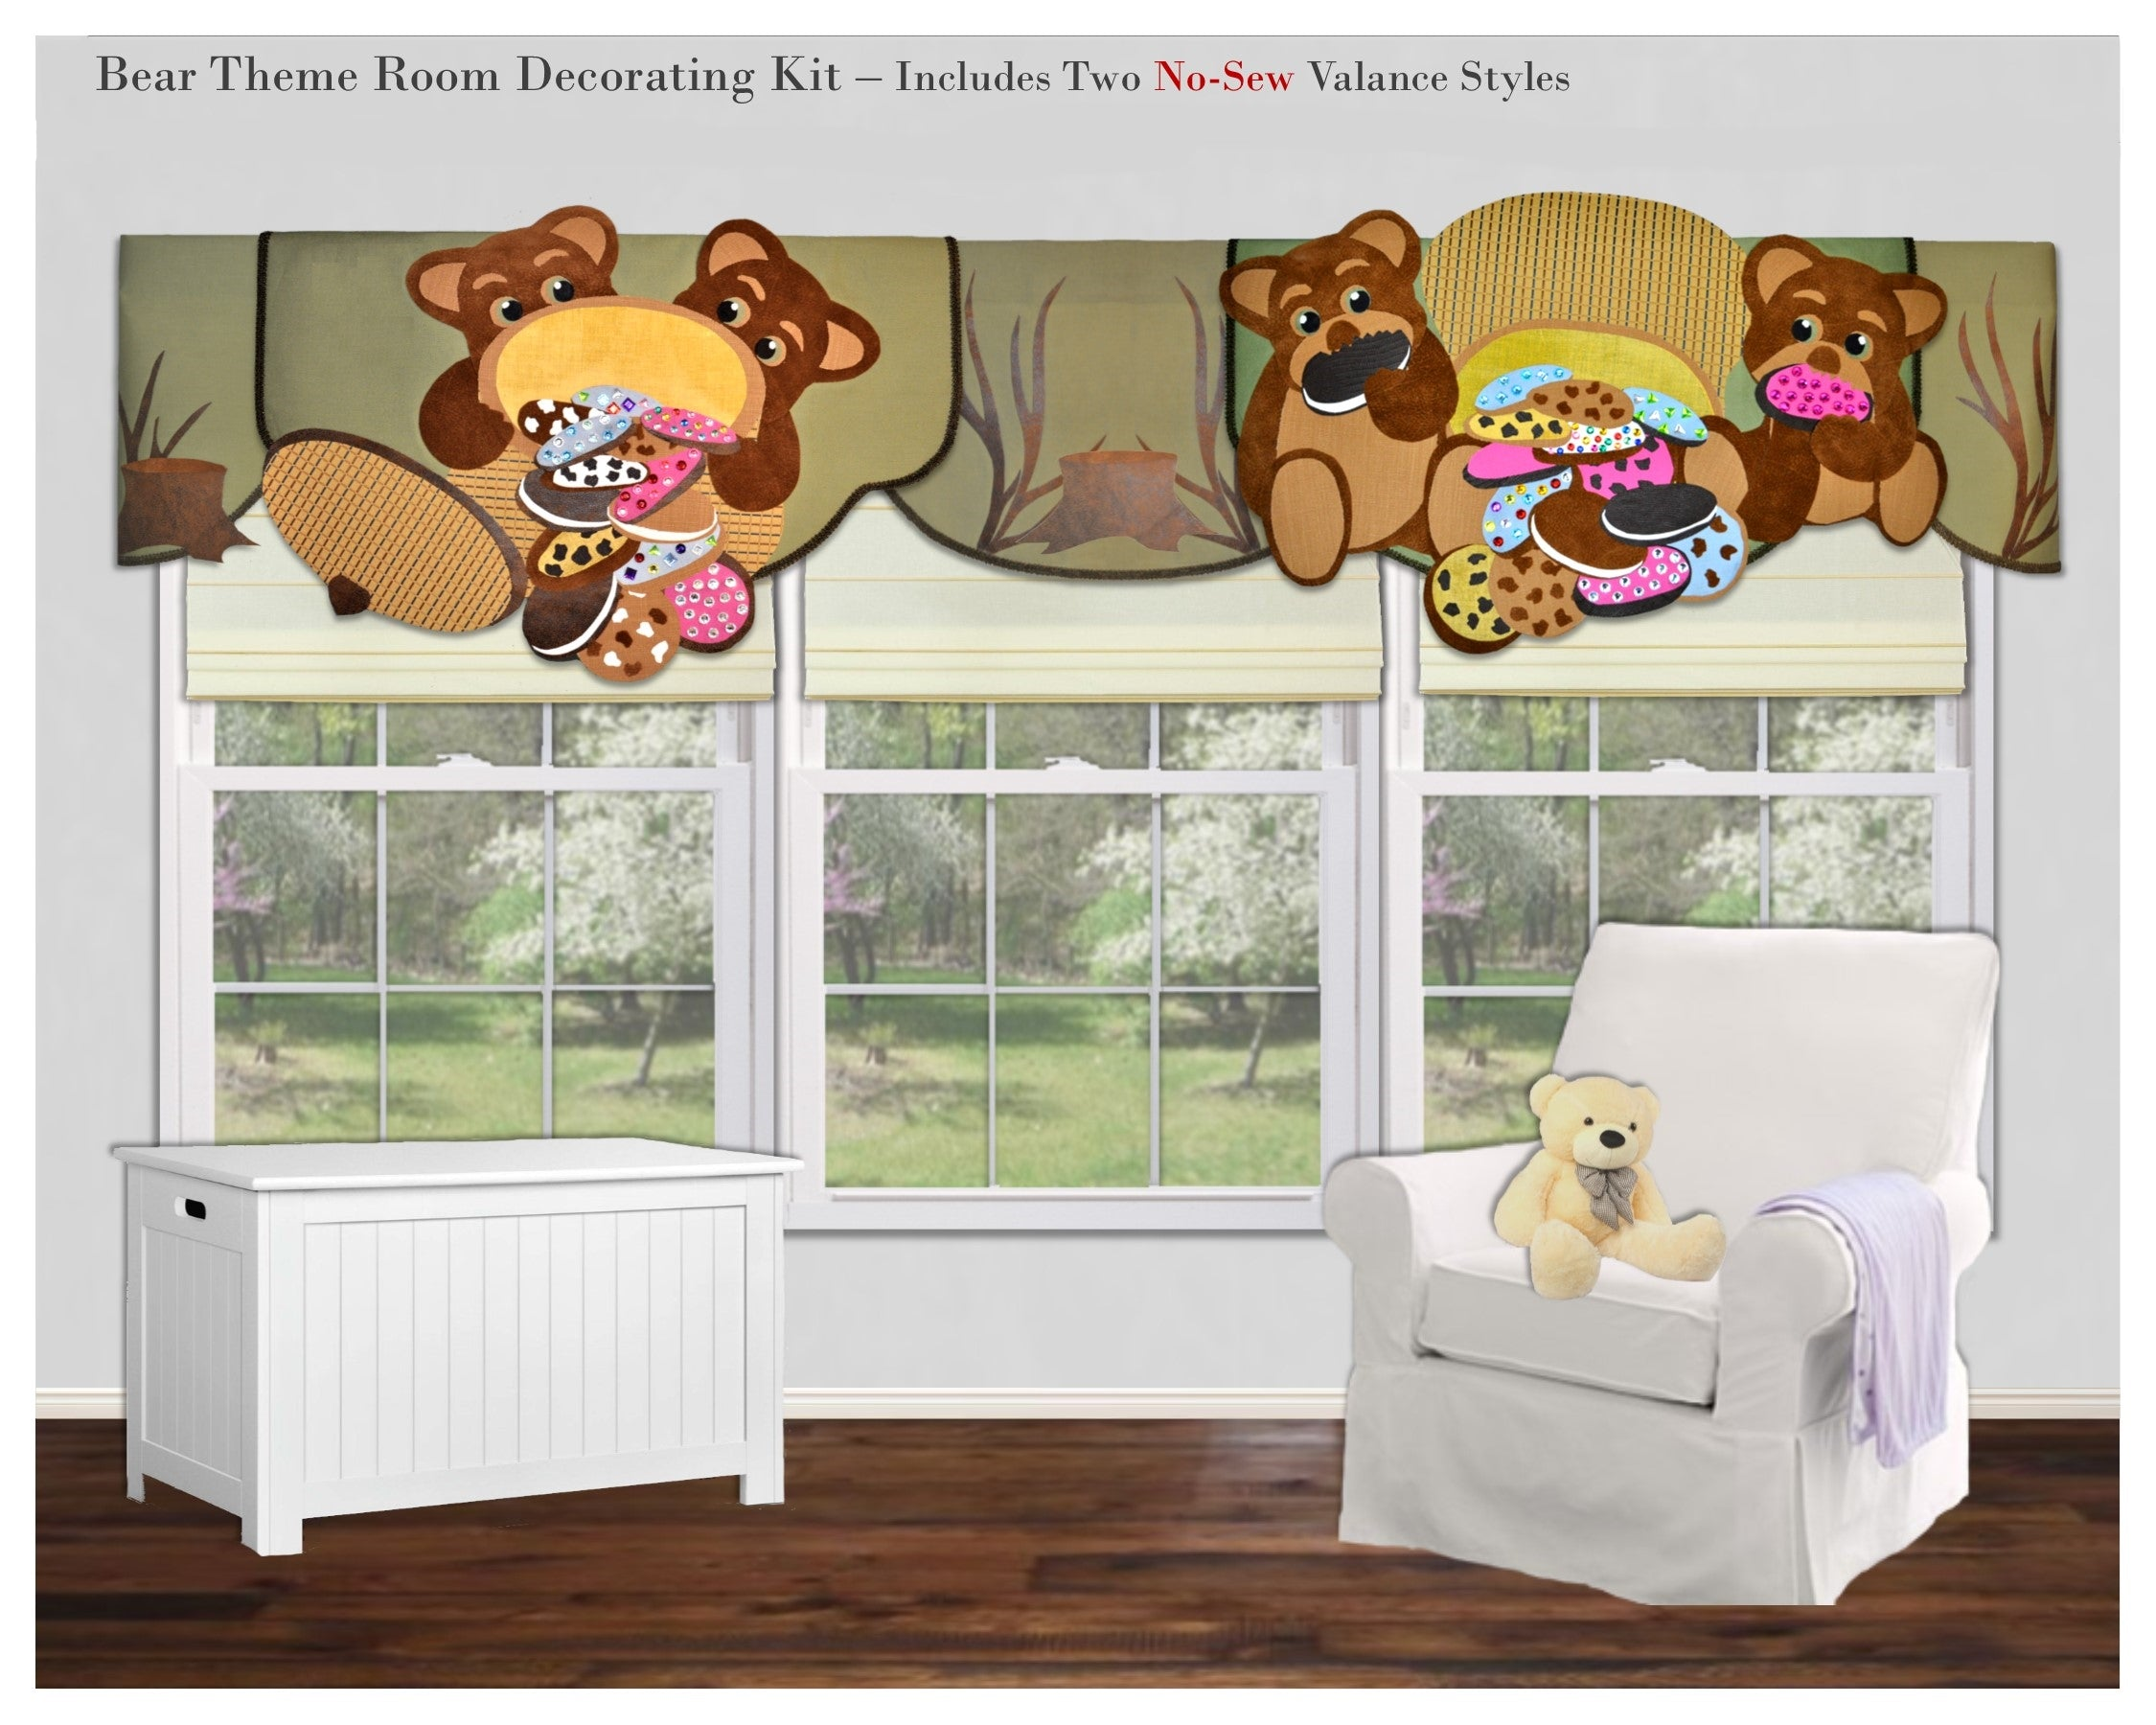 Traceable Designer children's valance, make easy no-sew teddy bear window treatments and wall accents.